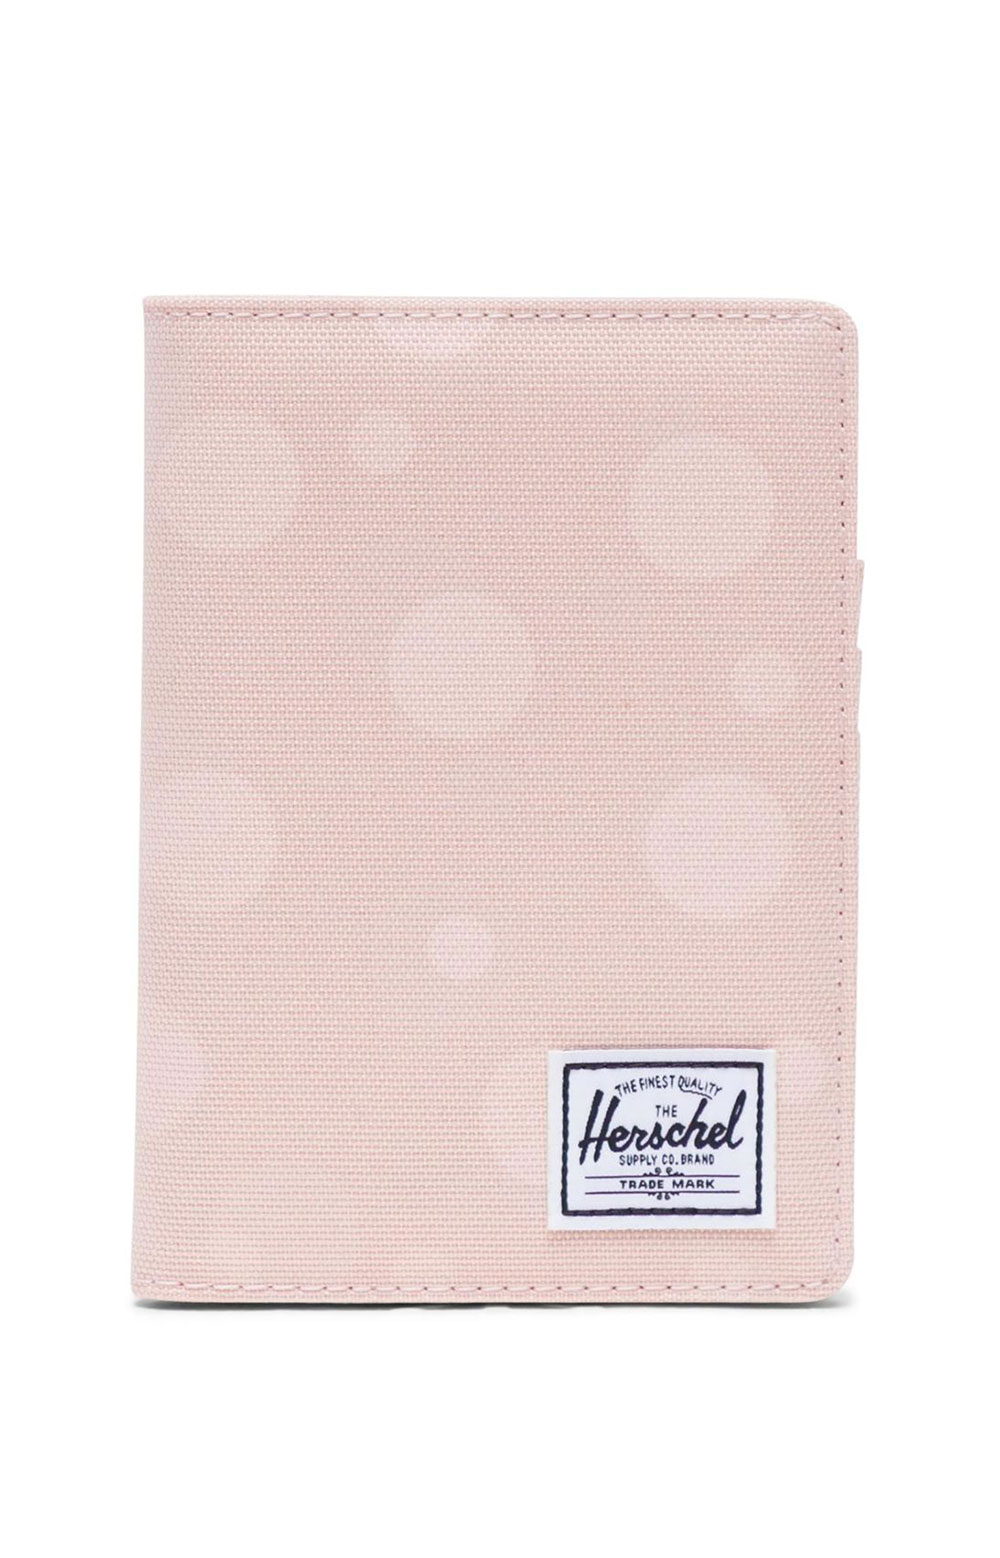 Raynor Passport Holder - Polka Cameo Rose